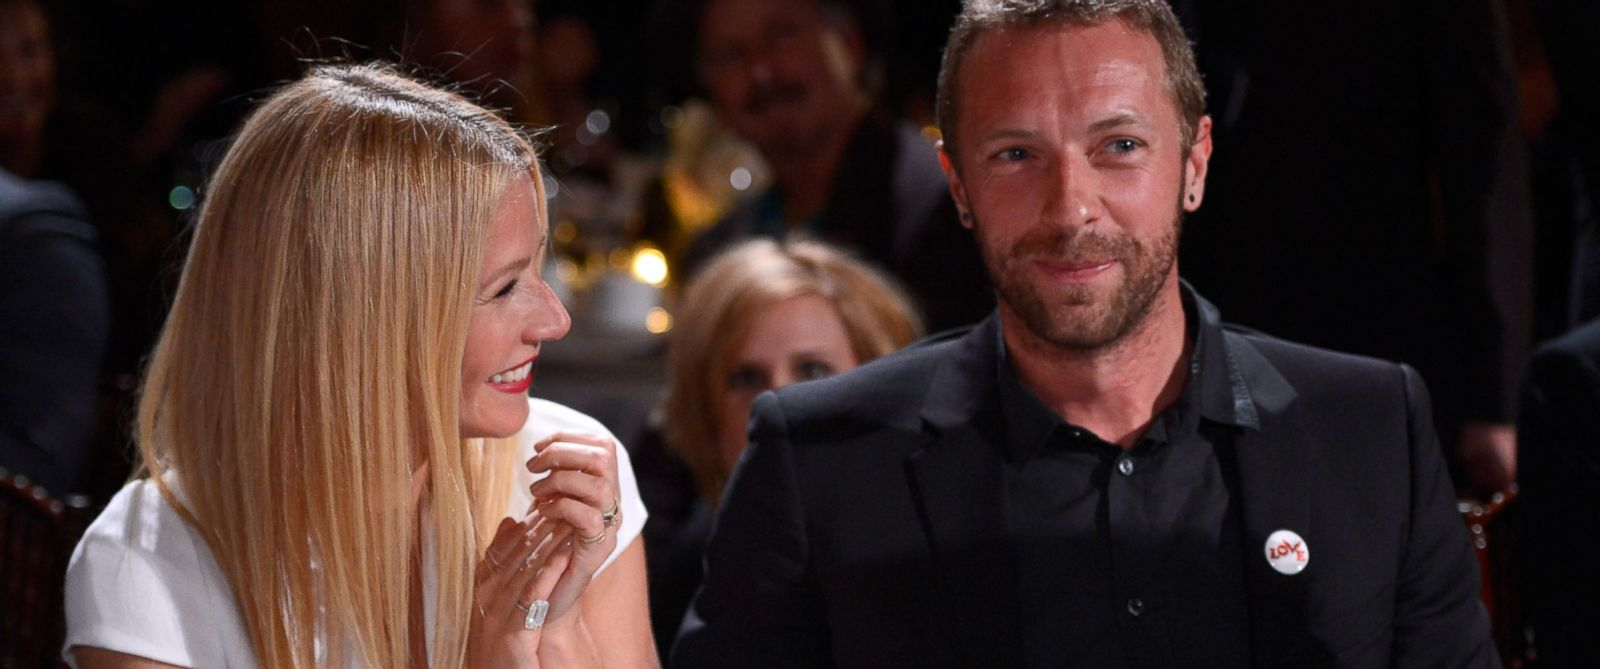 PHOTO: Gwyneth Paltrow, left, and Chris Martin, right, are pictured on Jan. 11, 2014 in Beverly Hills, Calif.